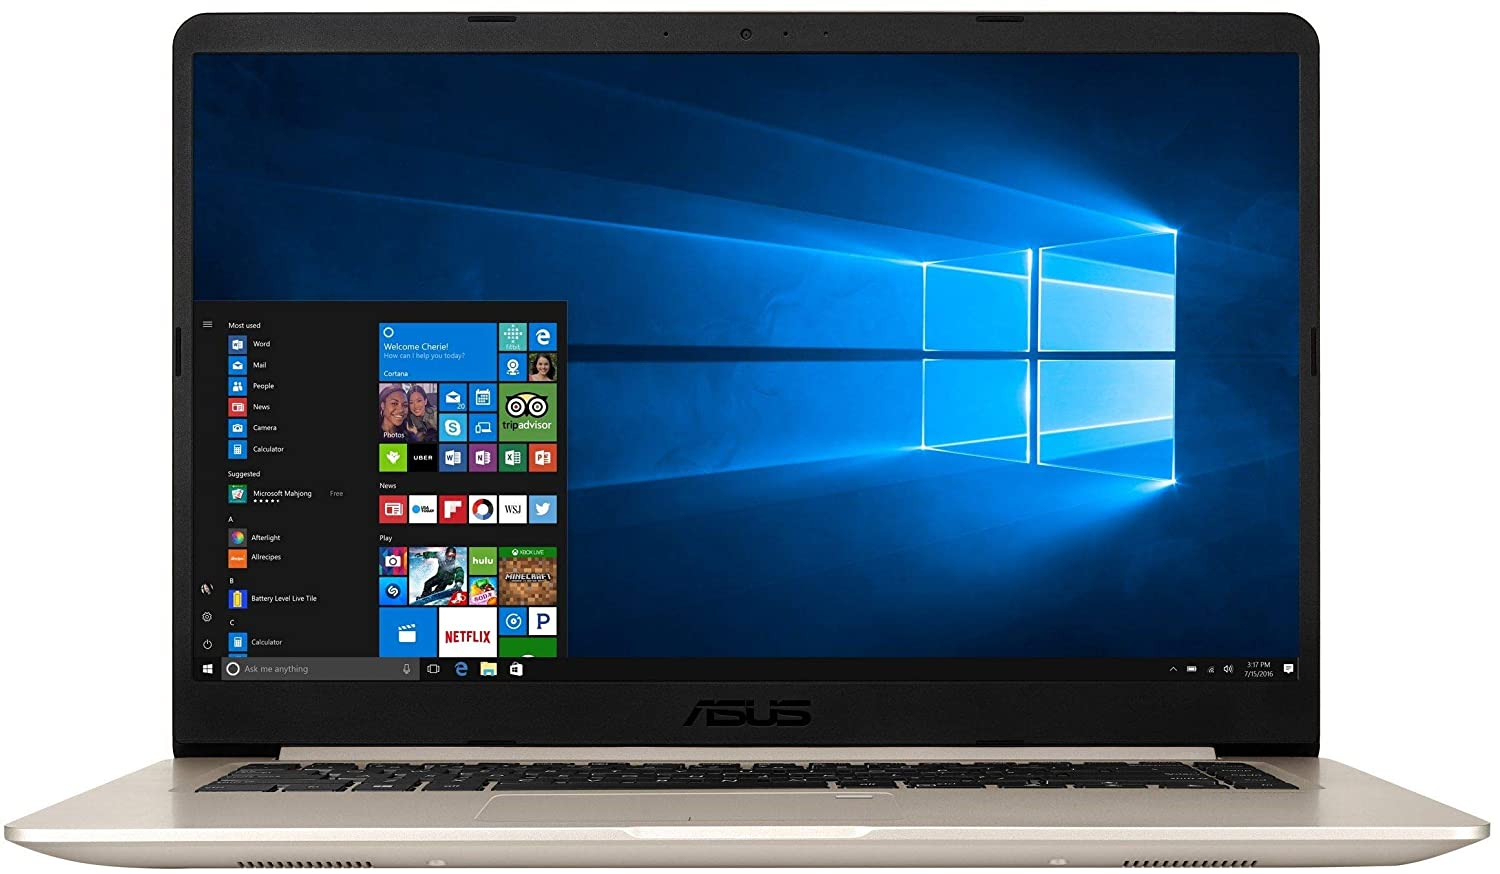 Buy Asus Vivobook Core I5 8th Gen 156 Inch Laptop 8gb 1tb Windows Mdisk Kabel Vga Blue Plate 10 Meter 2gb Graphics Gold 17kg S510un Bq217t Online At Low Prices In India